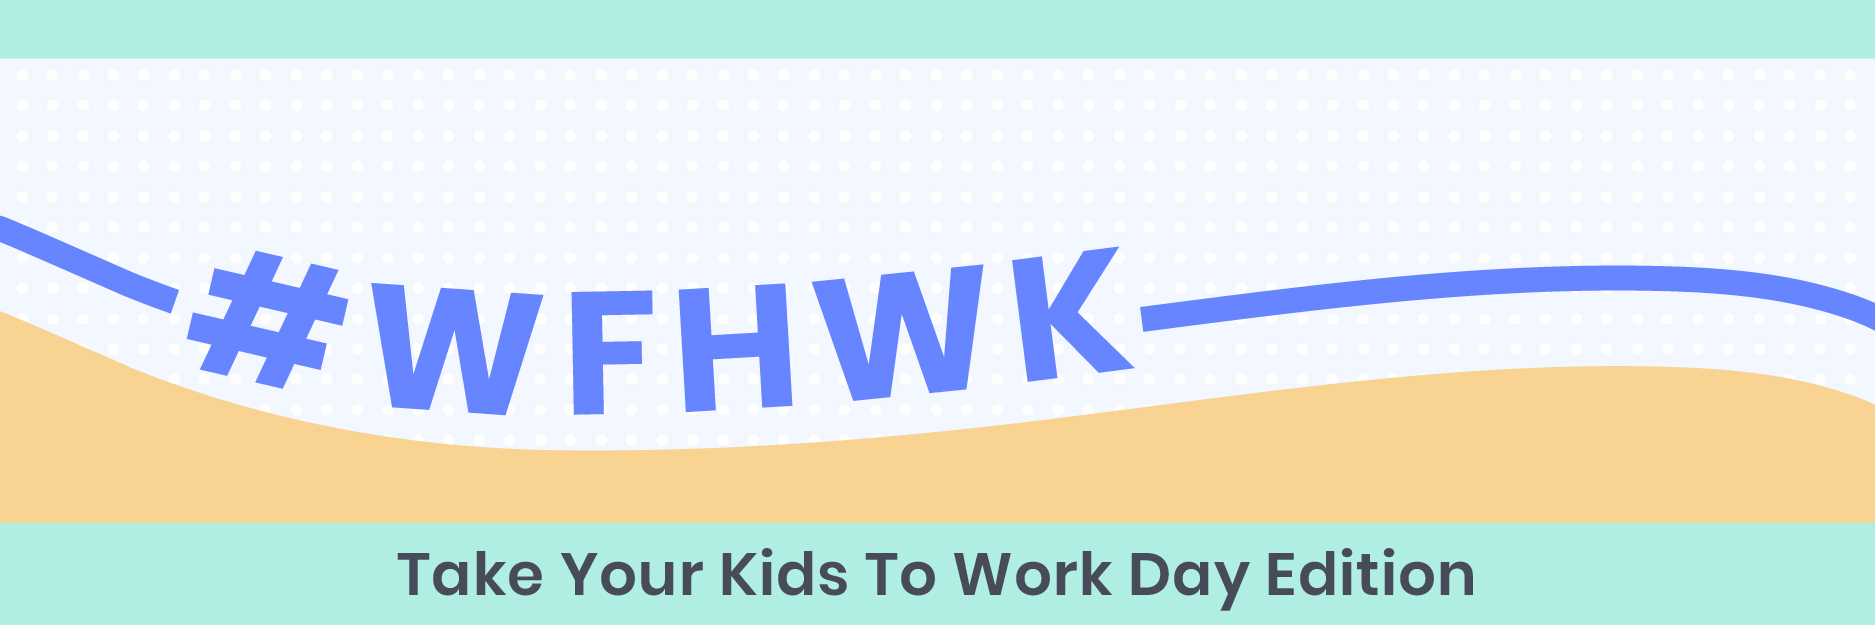 Take Your Kids To Work Day 2020